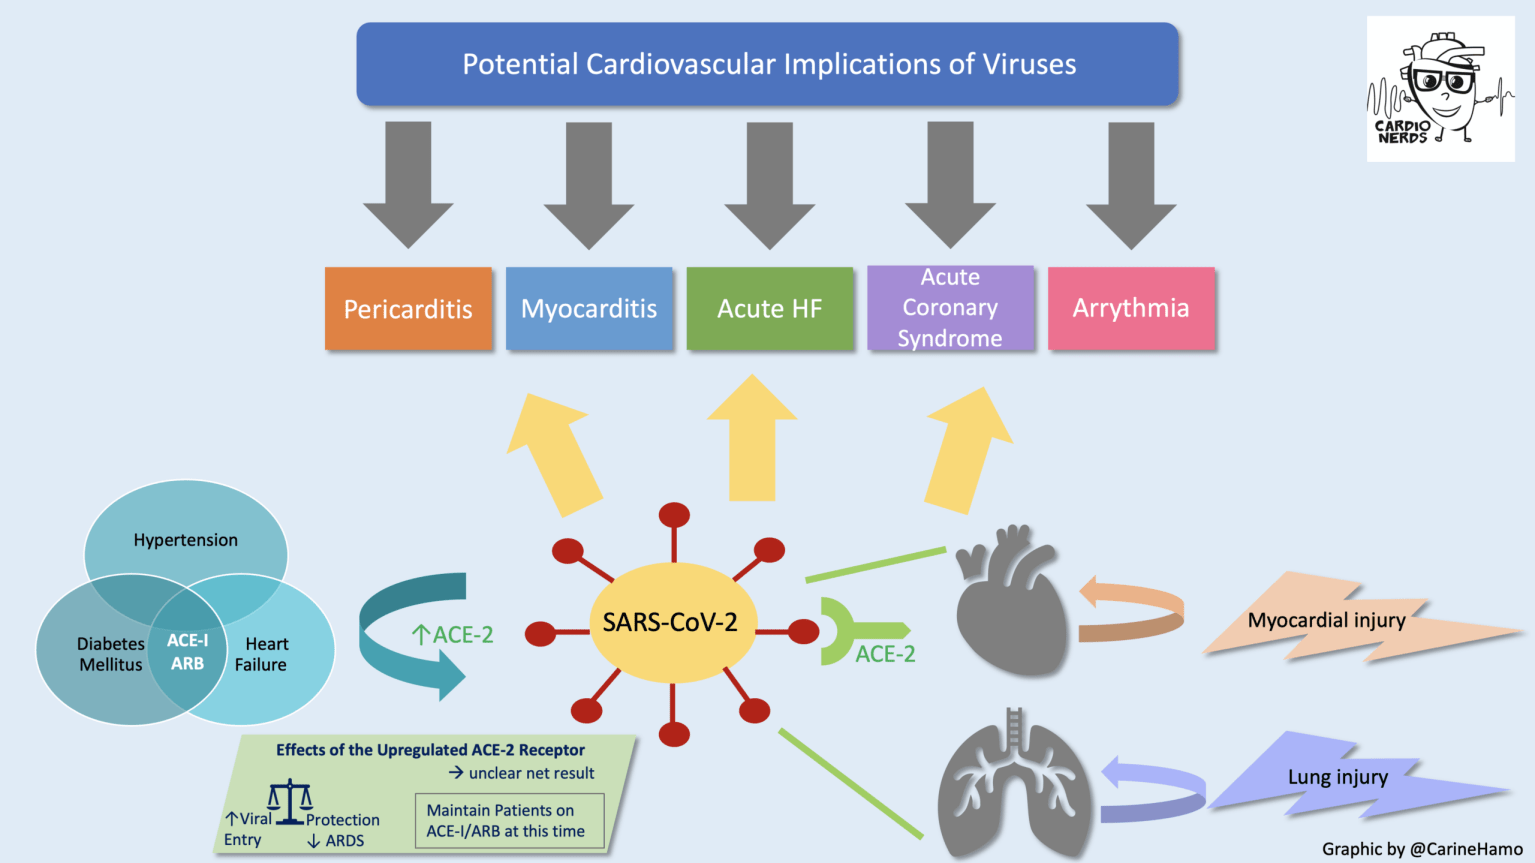 COVID-19 Cardiovascular Implications